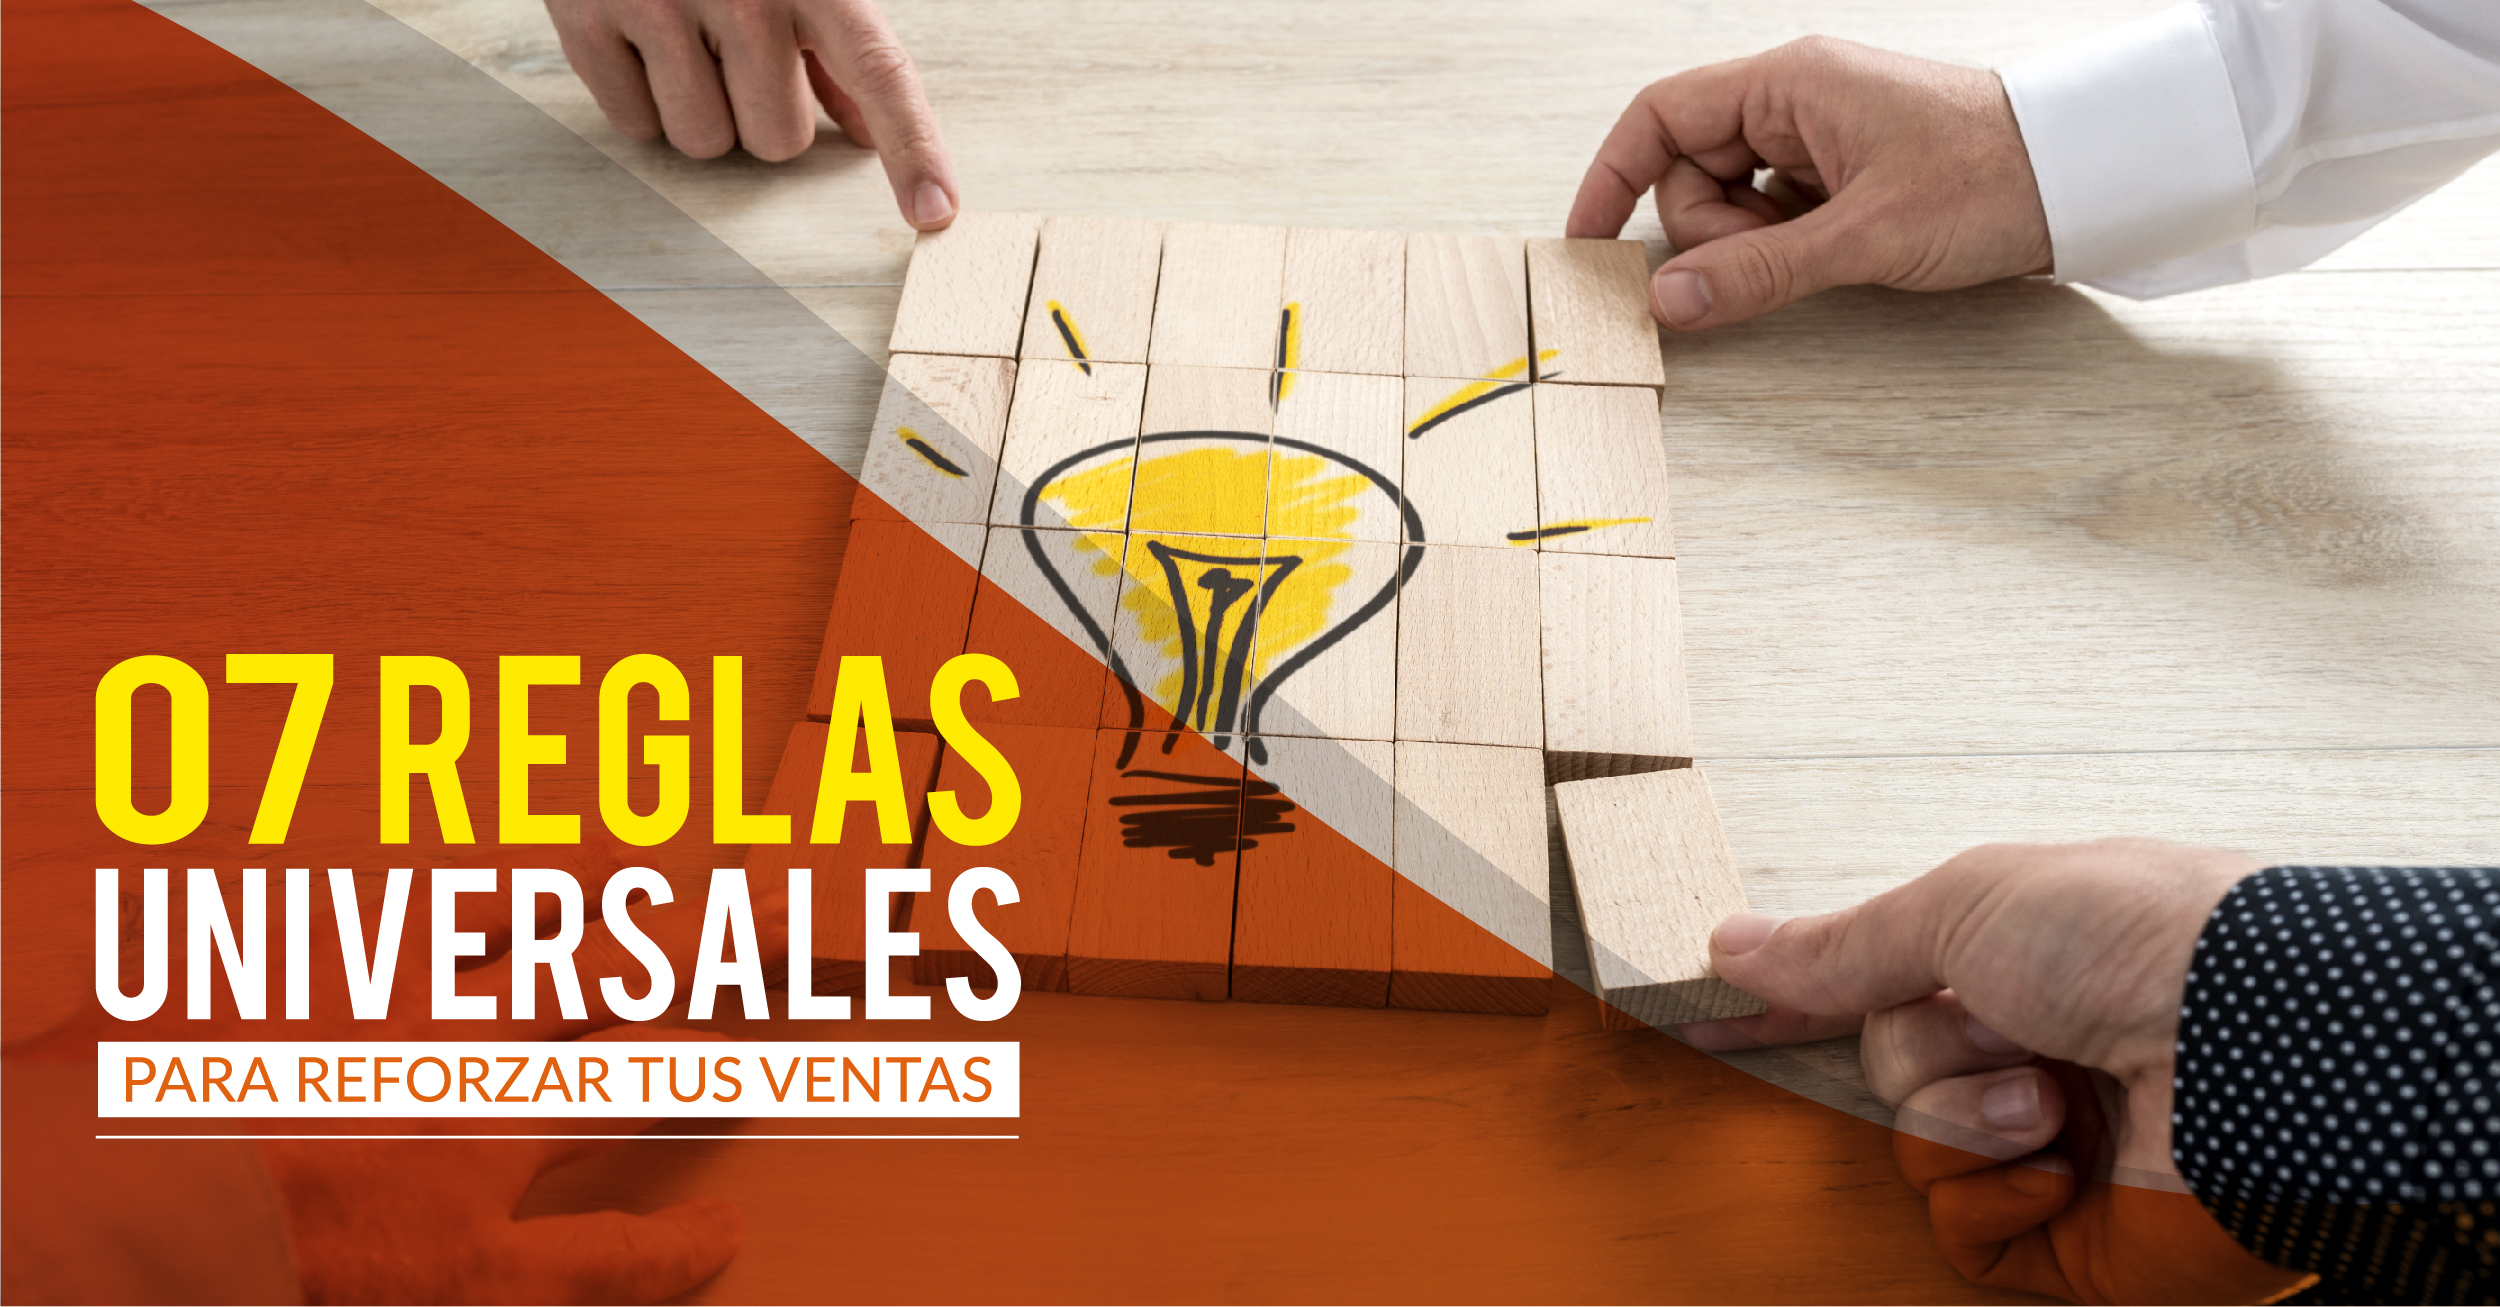 07 Reglas universales de la ventas - marketing - ventas online